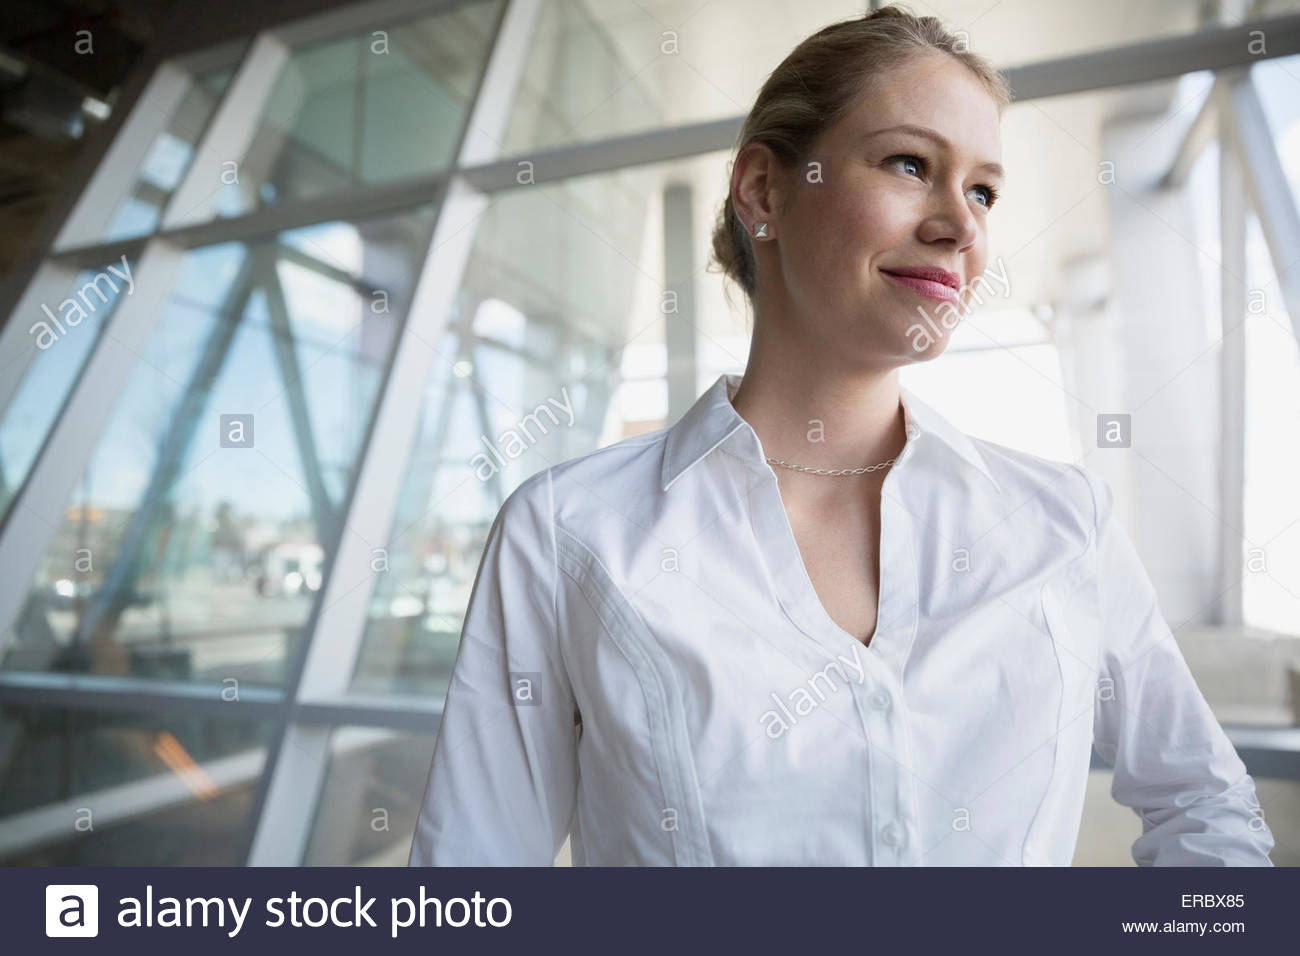 Smiling blonde businesswoman with blonde hair looking away - Stock Image